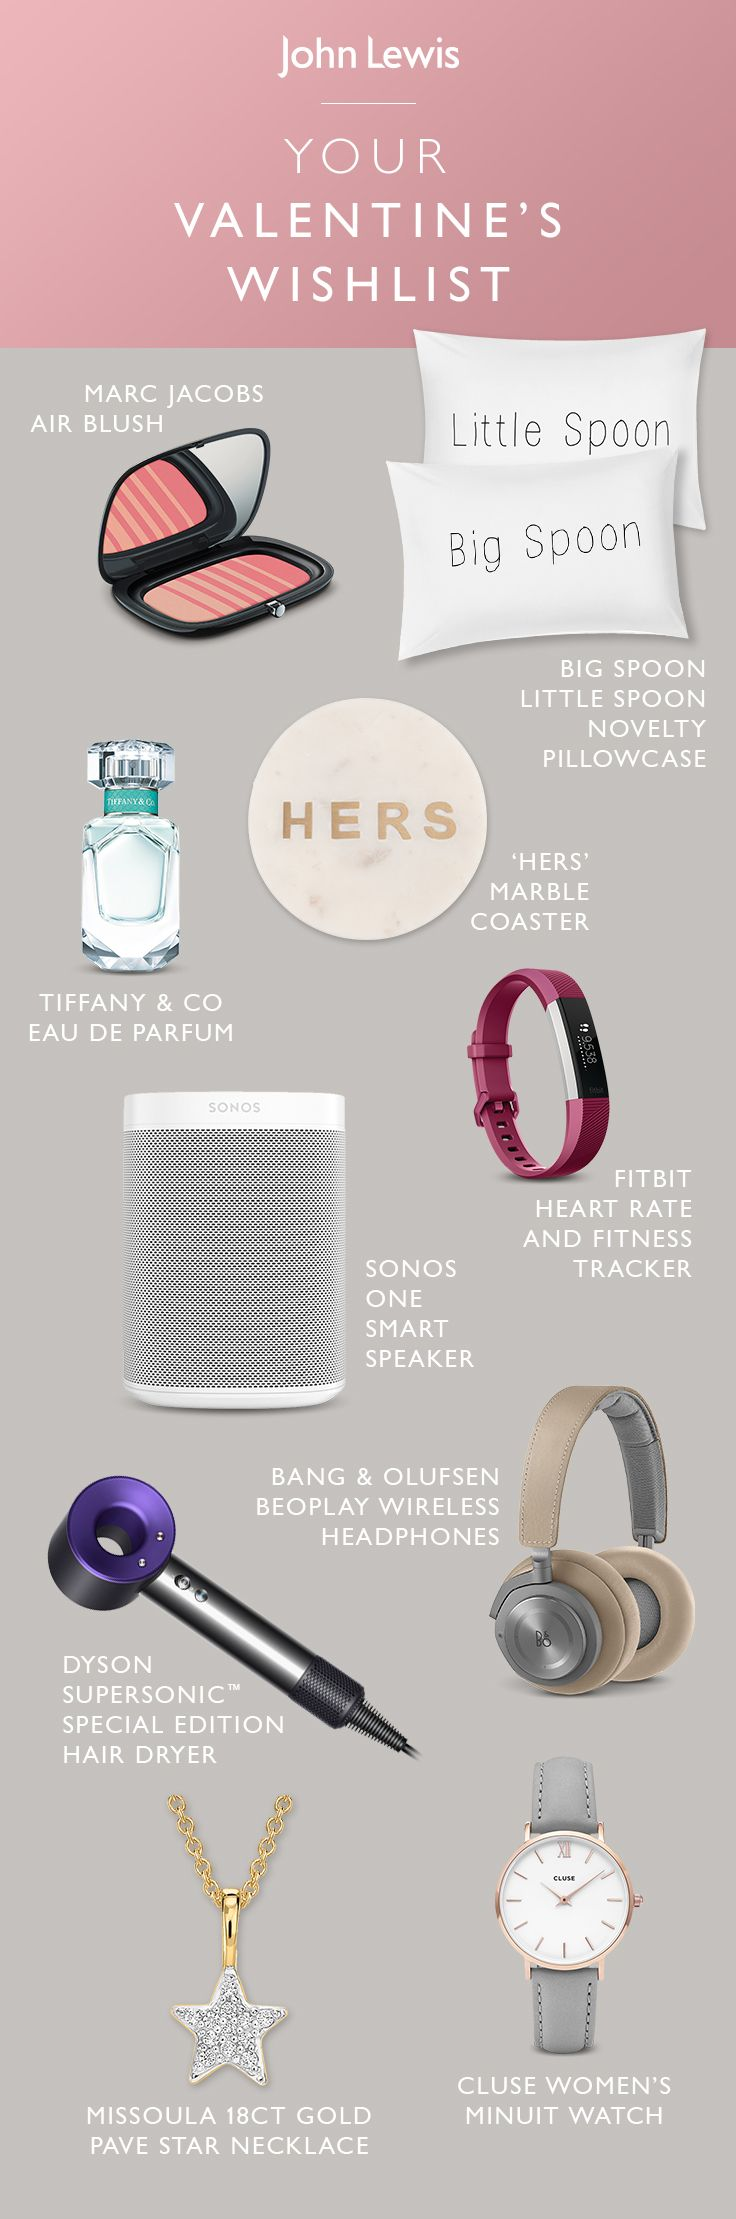 Whether it's a gift for her, for him, or a treat to yourself, share the love with our selection of unique Valentine's gifts at John Lewis. From the latest technology to luxurious beauty products, we have everything you need to surprise your loved one.